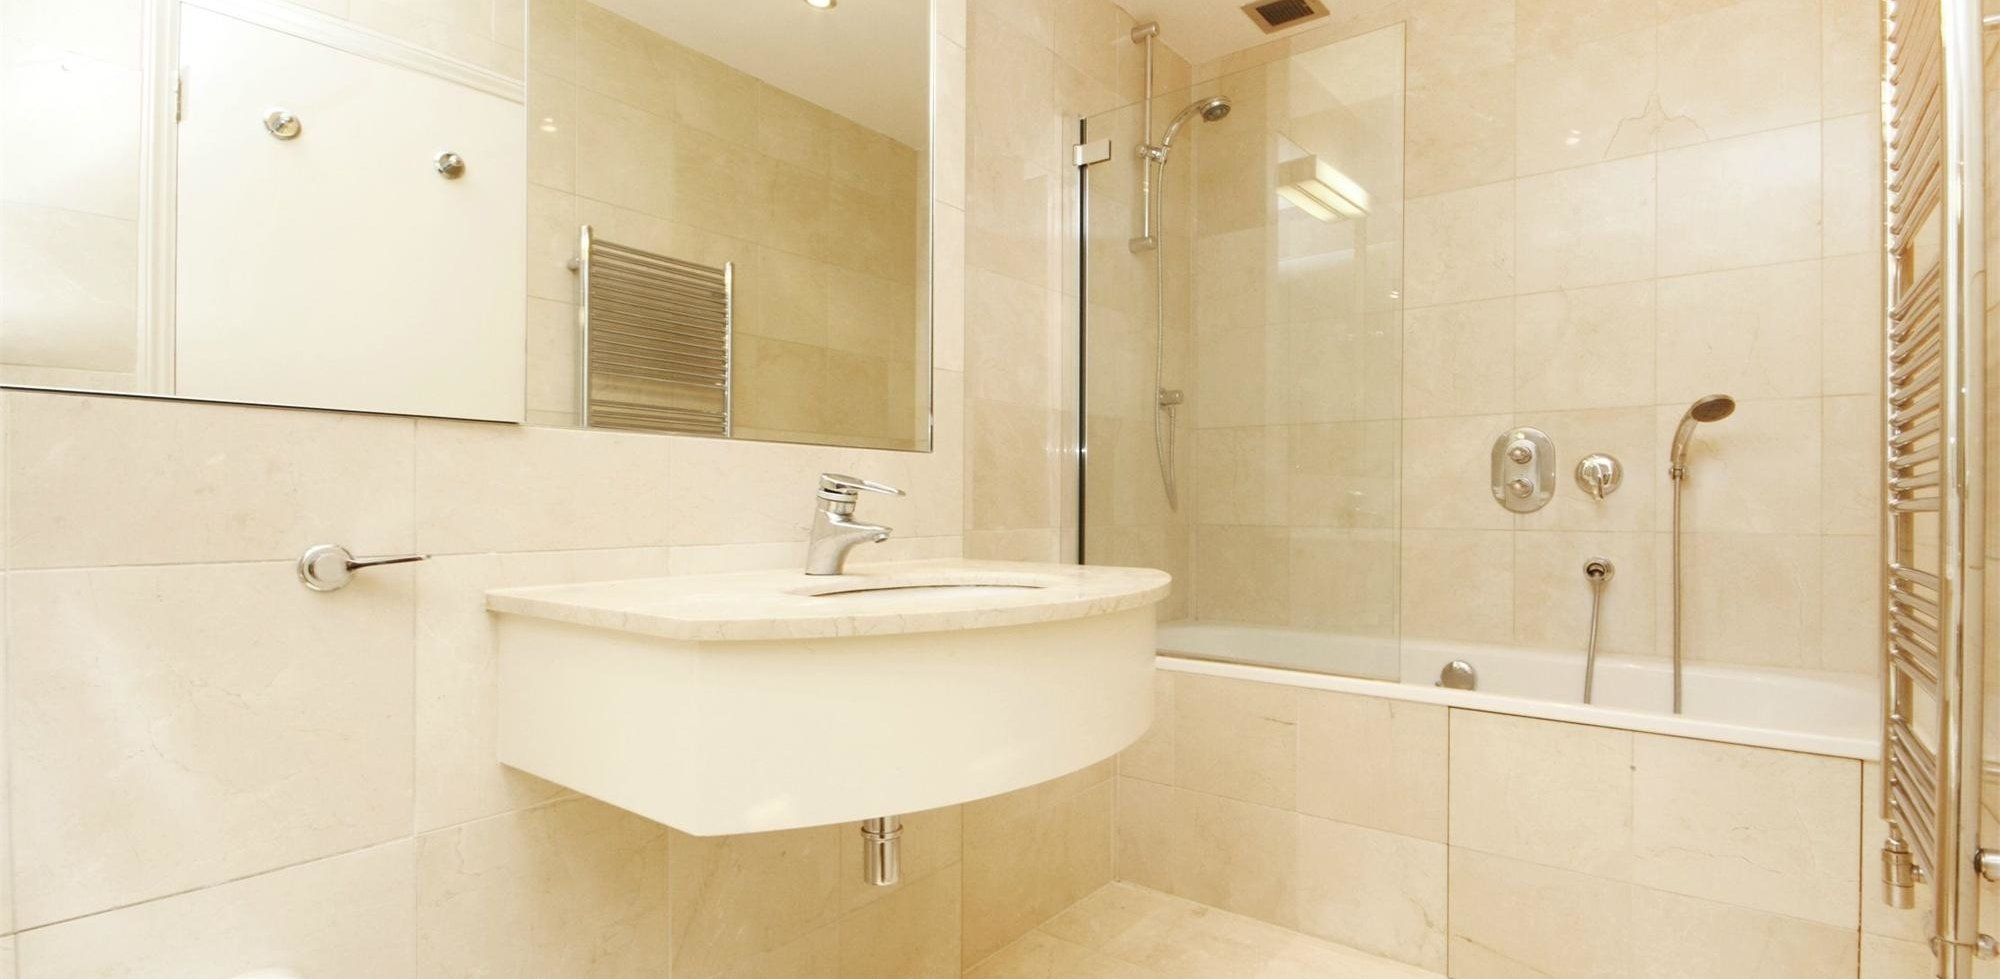 House to rent in chiswick wharf chiswick w4 for W 4 bathrooms chiswick